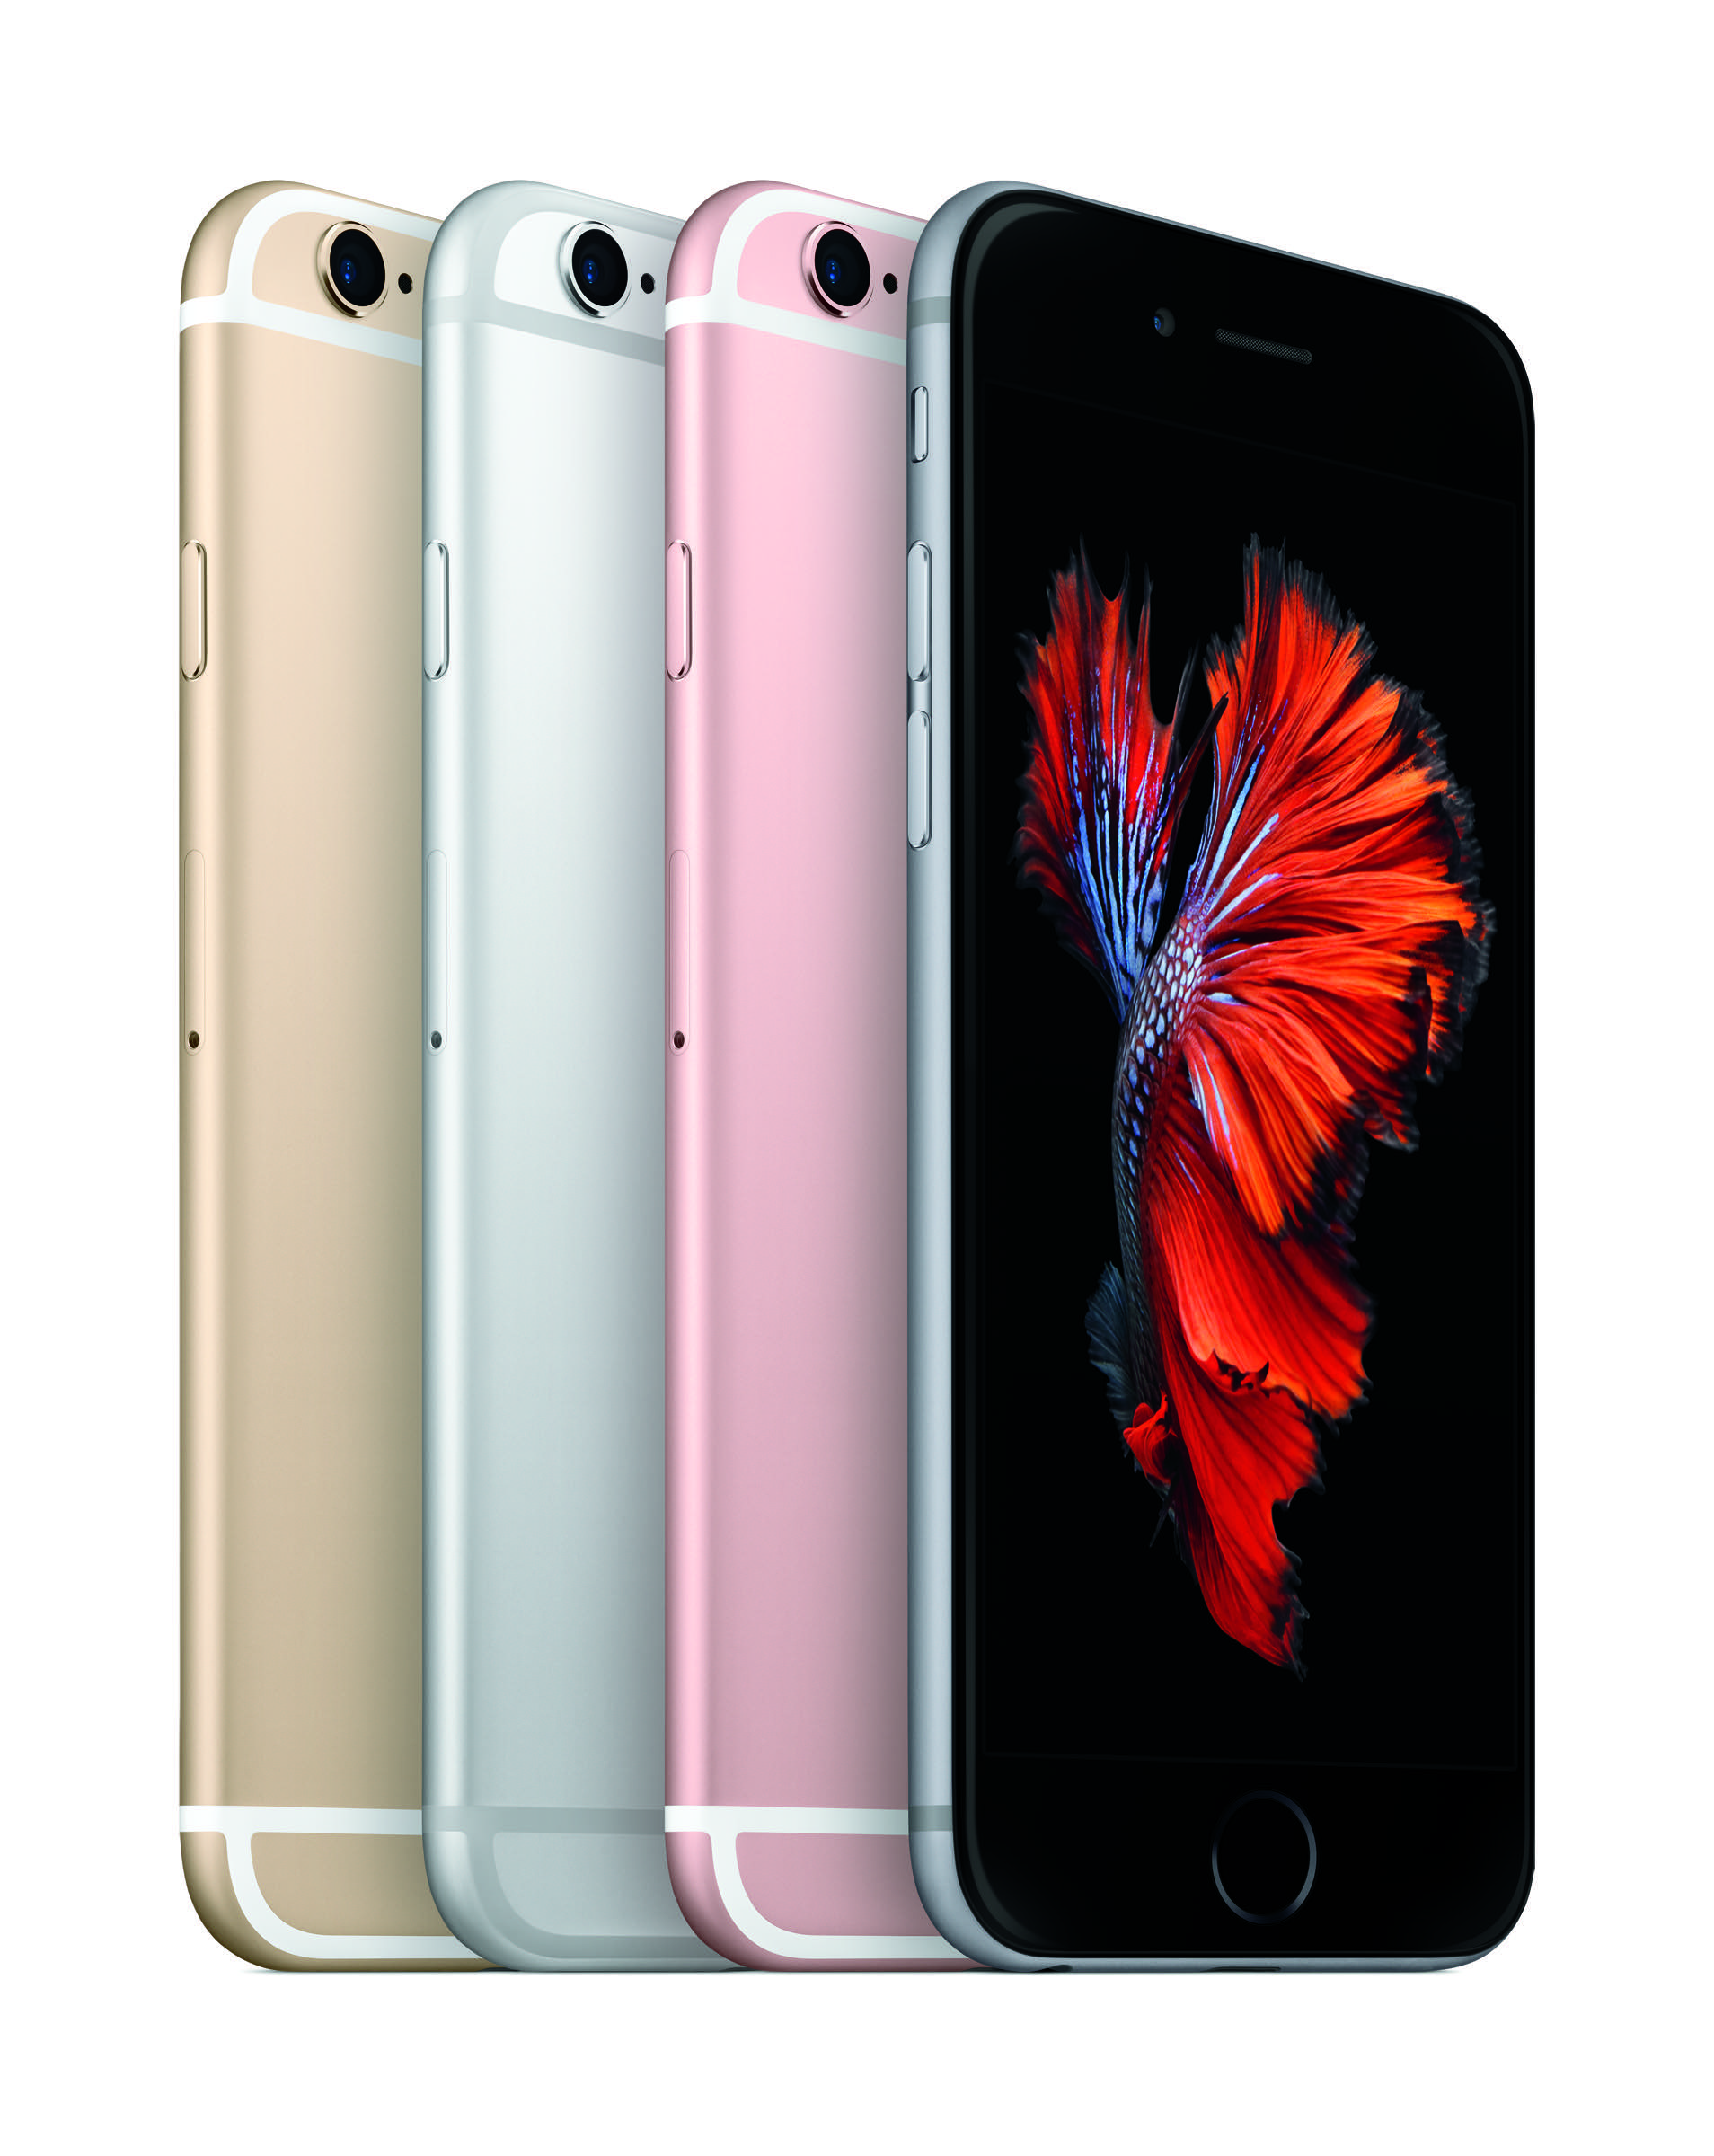 iPhone6s-4Color-RedFish-PR-PRINT